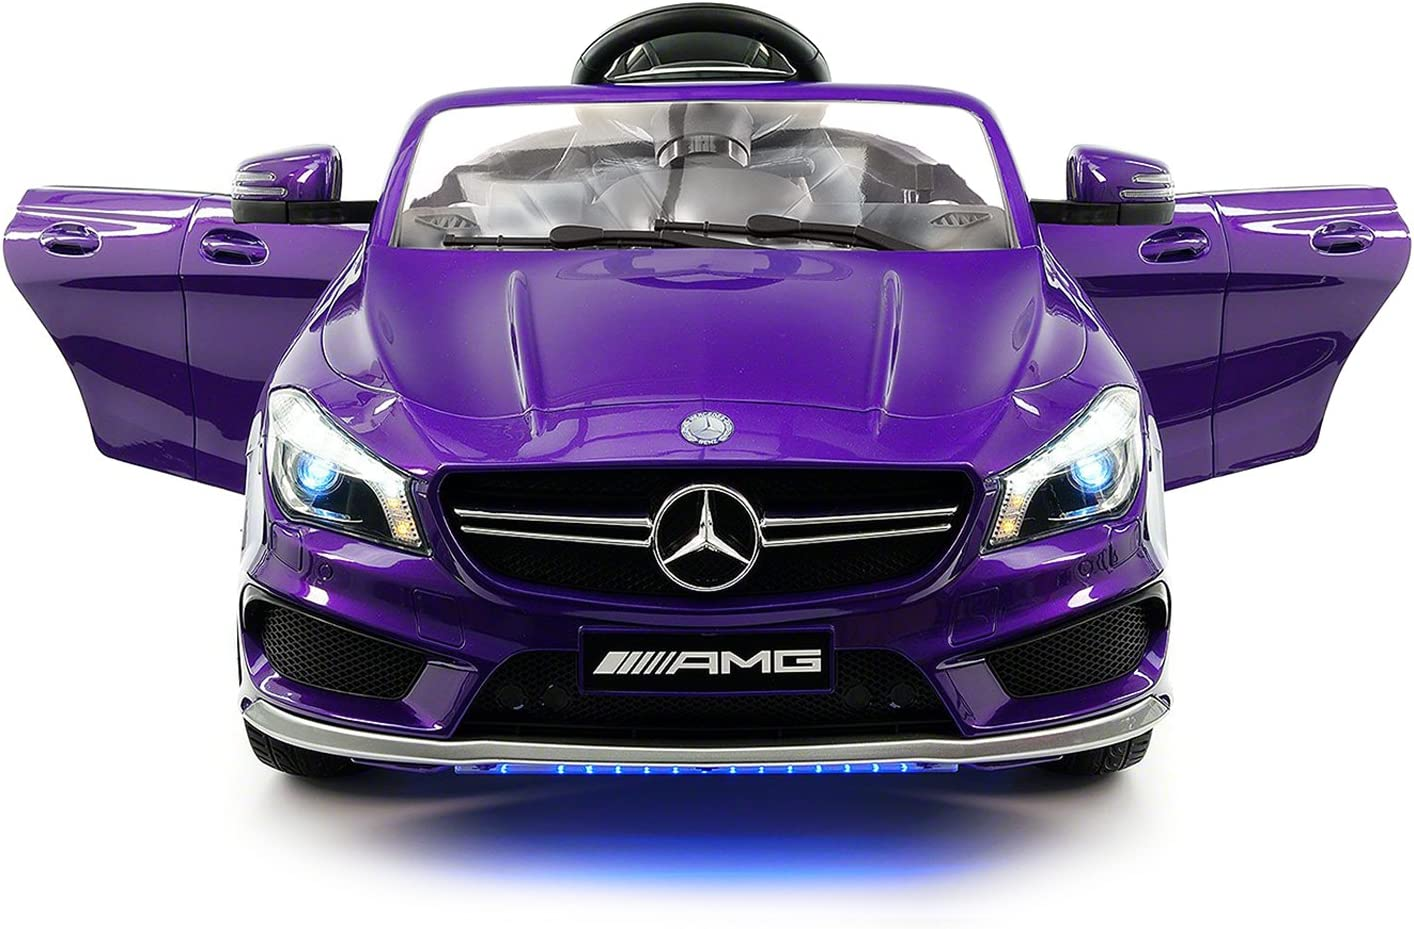 amazon com 2018 12v mercedes cla45 electric powered battery operated led wheels kids ride on toy car with parental remote control toys games 2018 12v mercedes cla45 electric powered battery operated led wheels kids ride on toy car with parental remote control